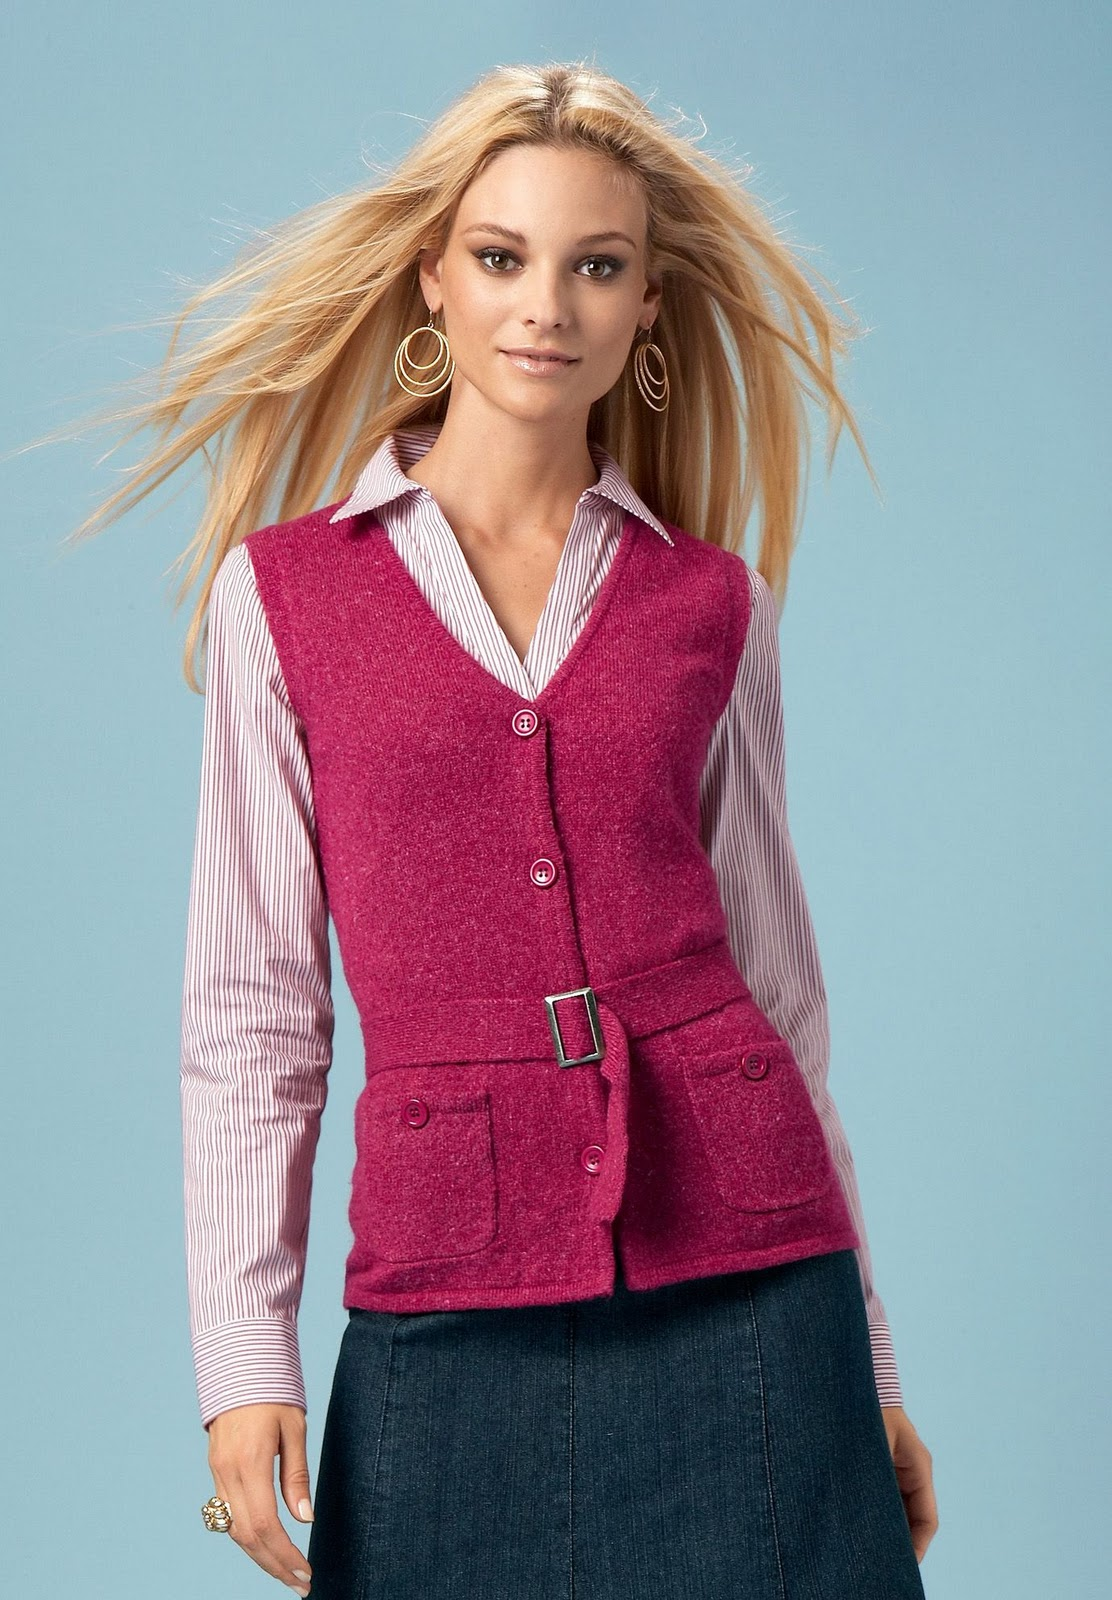 Sweater Vest Ladies - Cardigan With Buttons